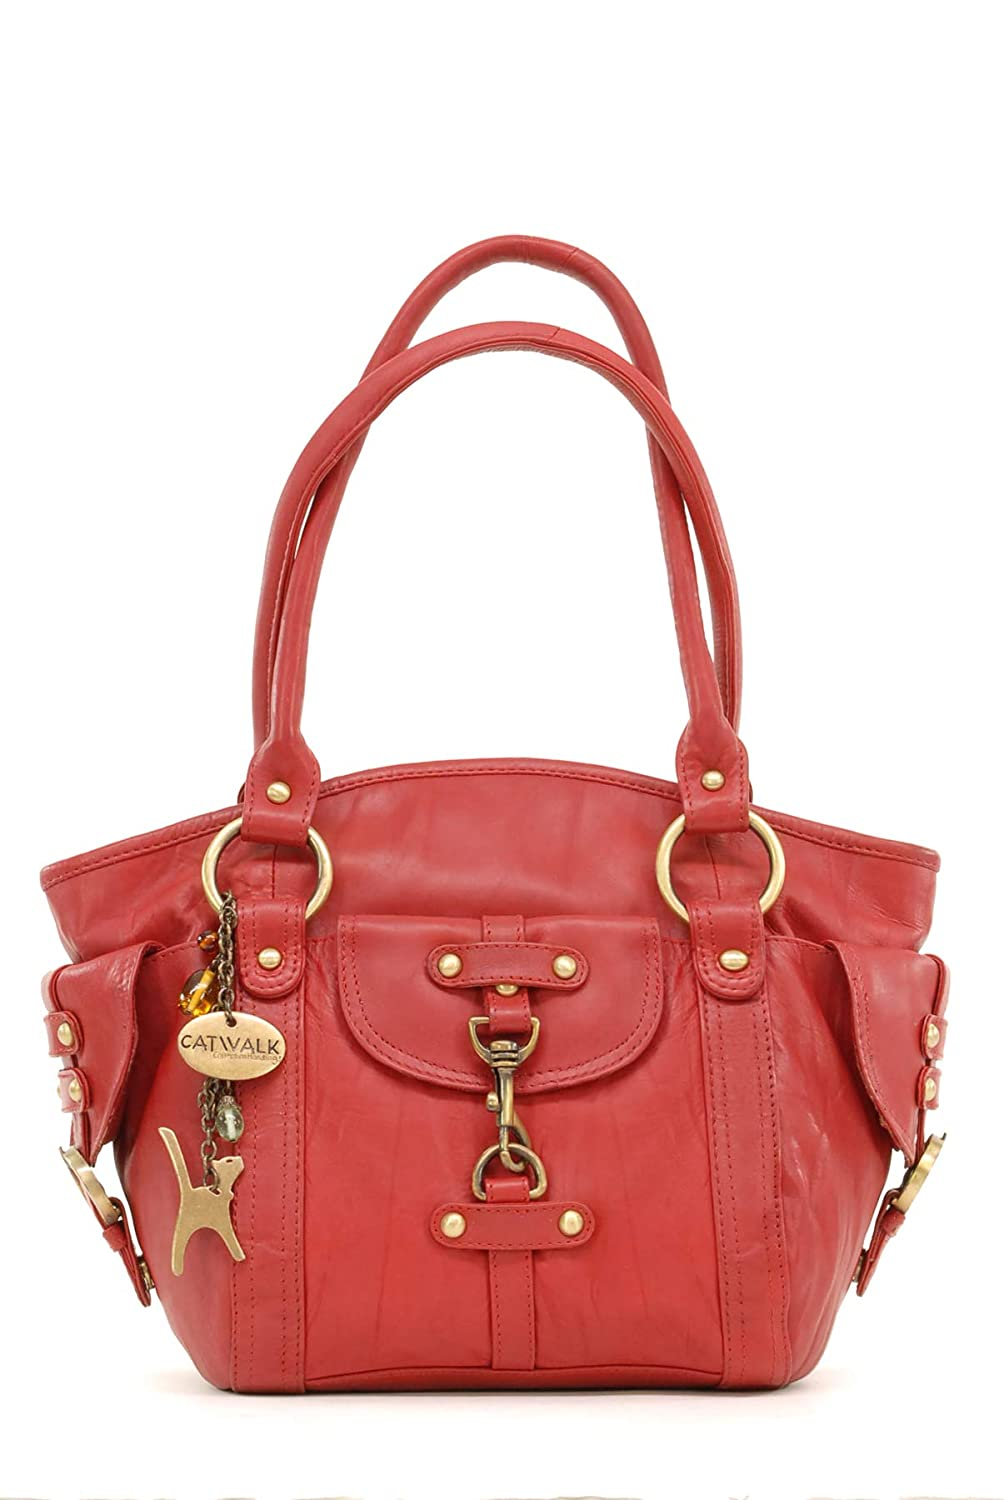 Catwalk Collection Leather Handbag - Karlie Catwalk Collection Handbags 5060167683770 B001QQOTB8